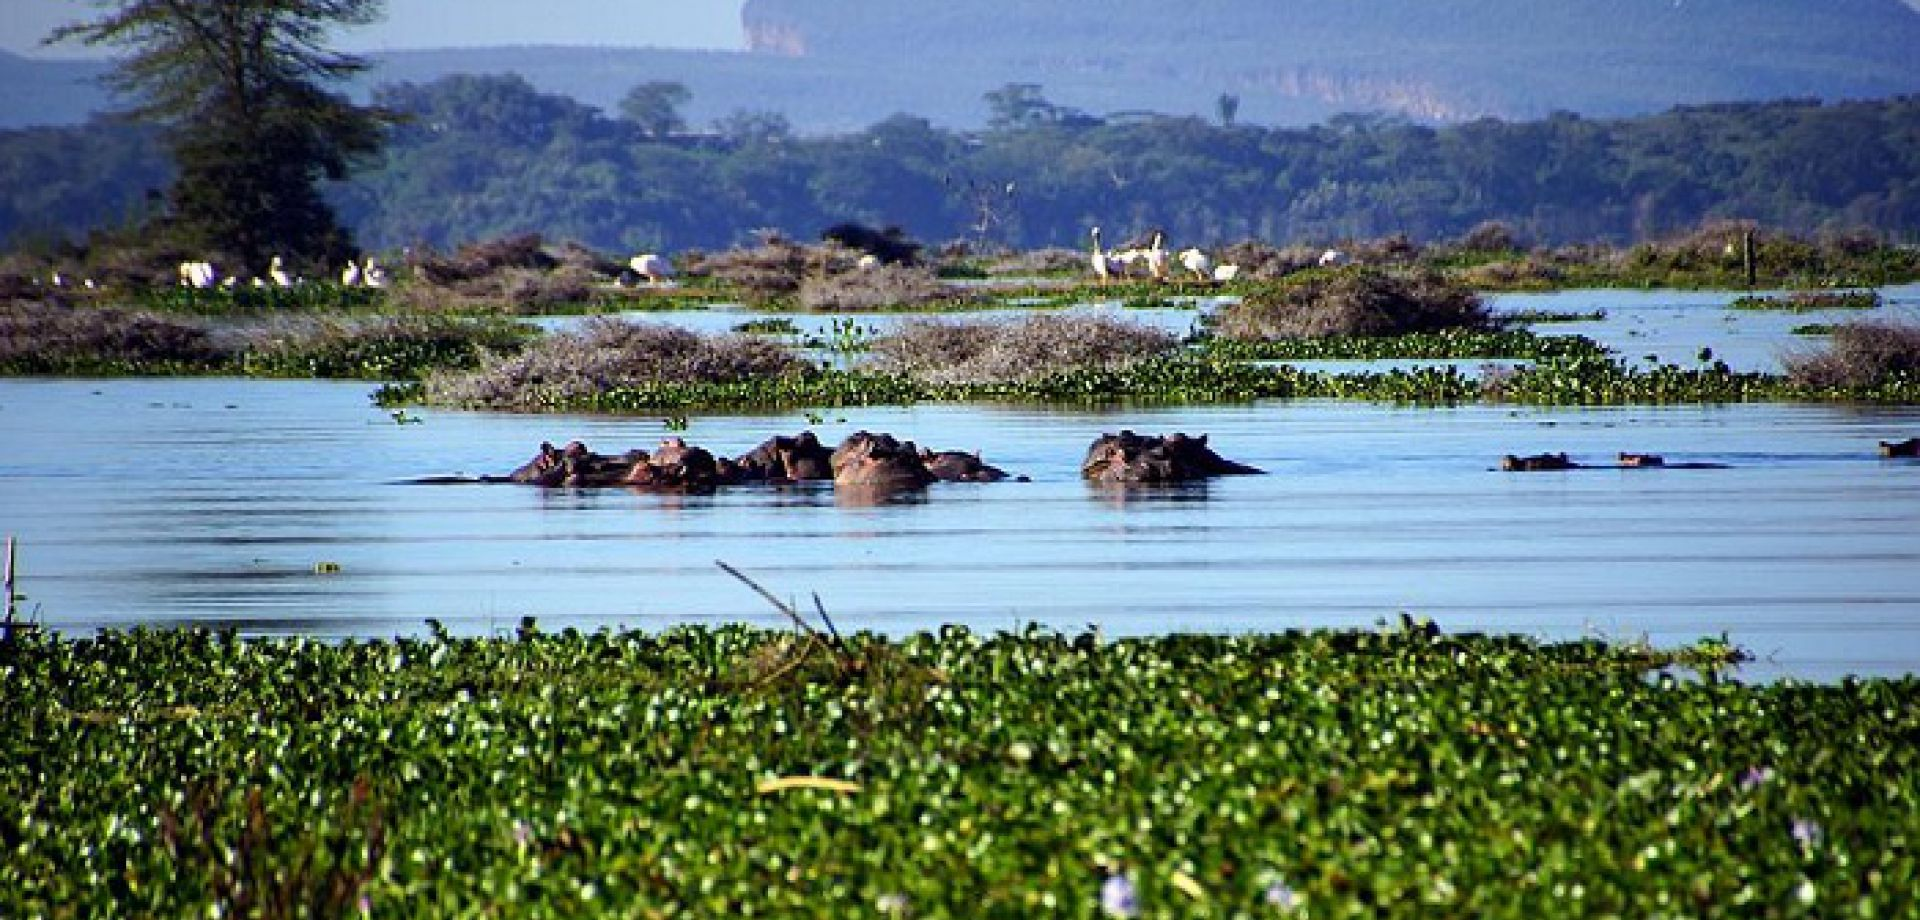 improved ecotourism in lake naivasha basin tourism essay The first management plan, initiated by the lake naivasha riparian association (lnra) in 1993, was noteworthy to introduce 'codes of conduct' for each group of lake users - flower growers, tourism operators, beef and dairy producers, urban developers, geothermal power generation.